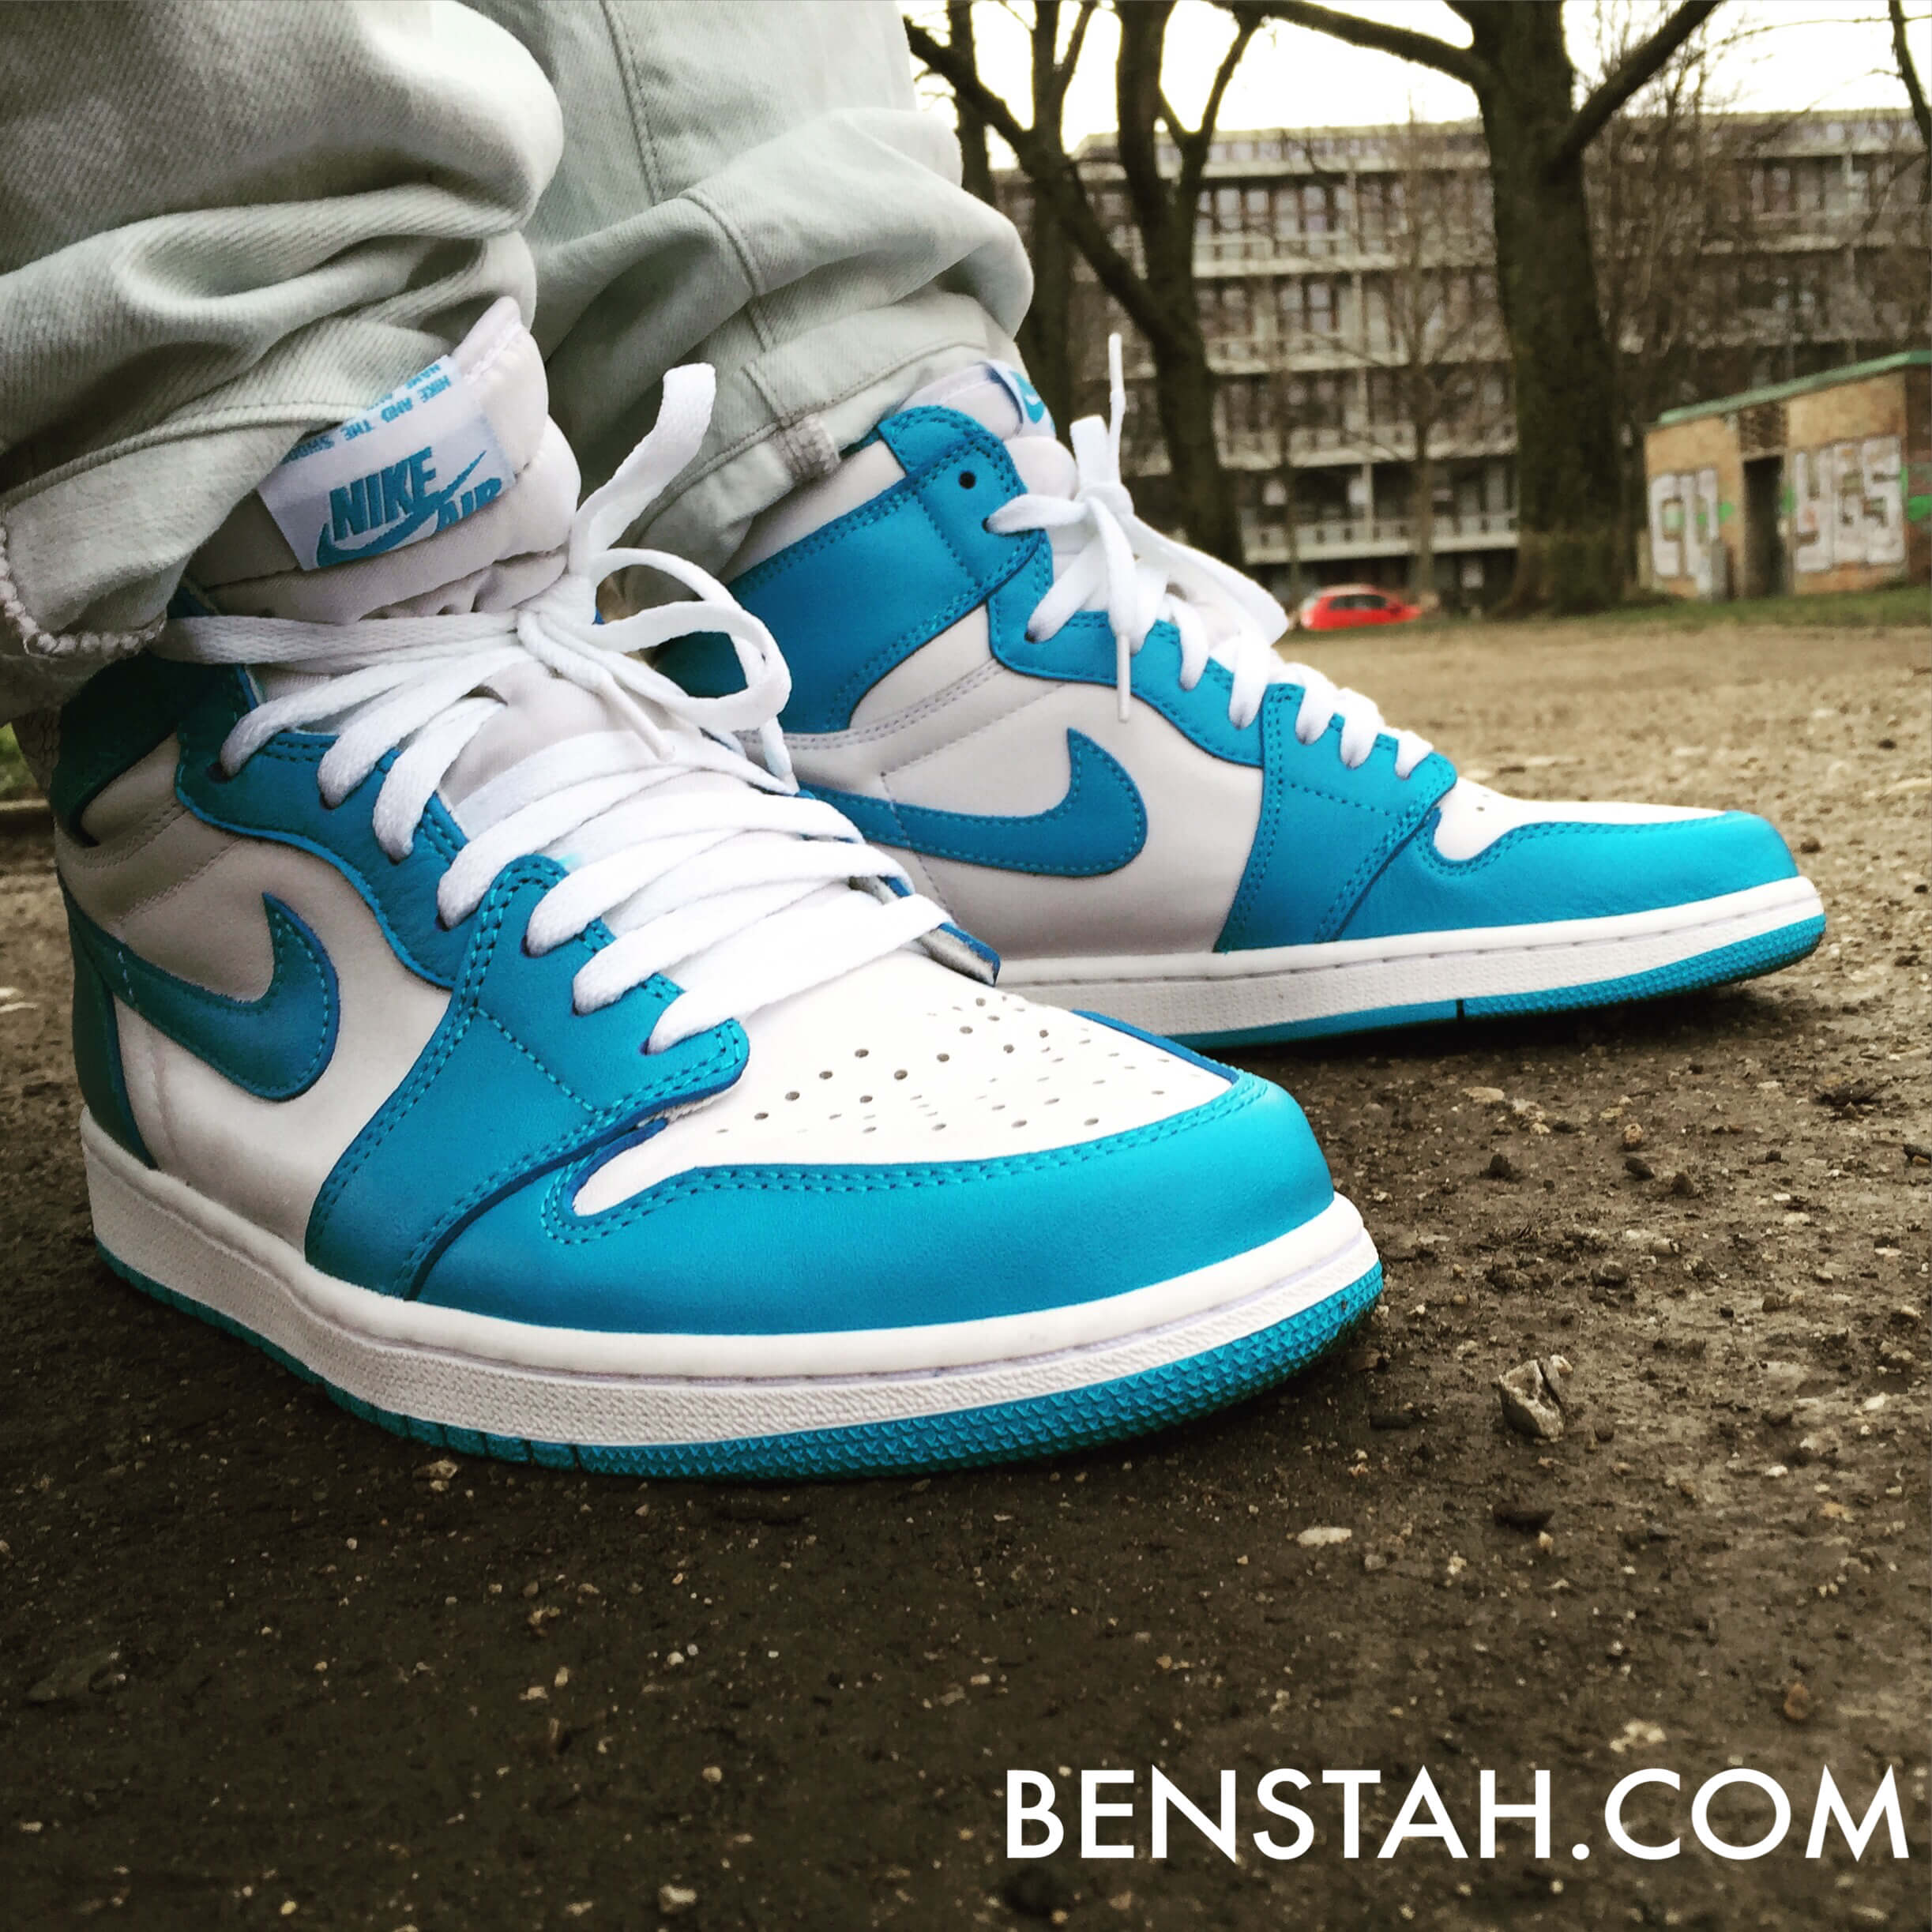 Air-Jordan-1-OG-UNC-Side-View-Benstah-Onfeet